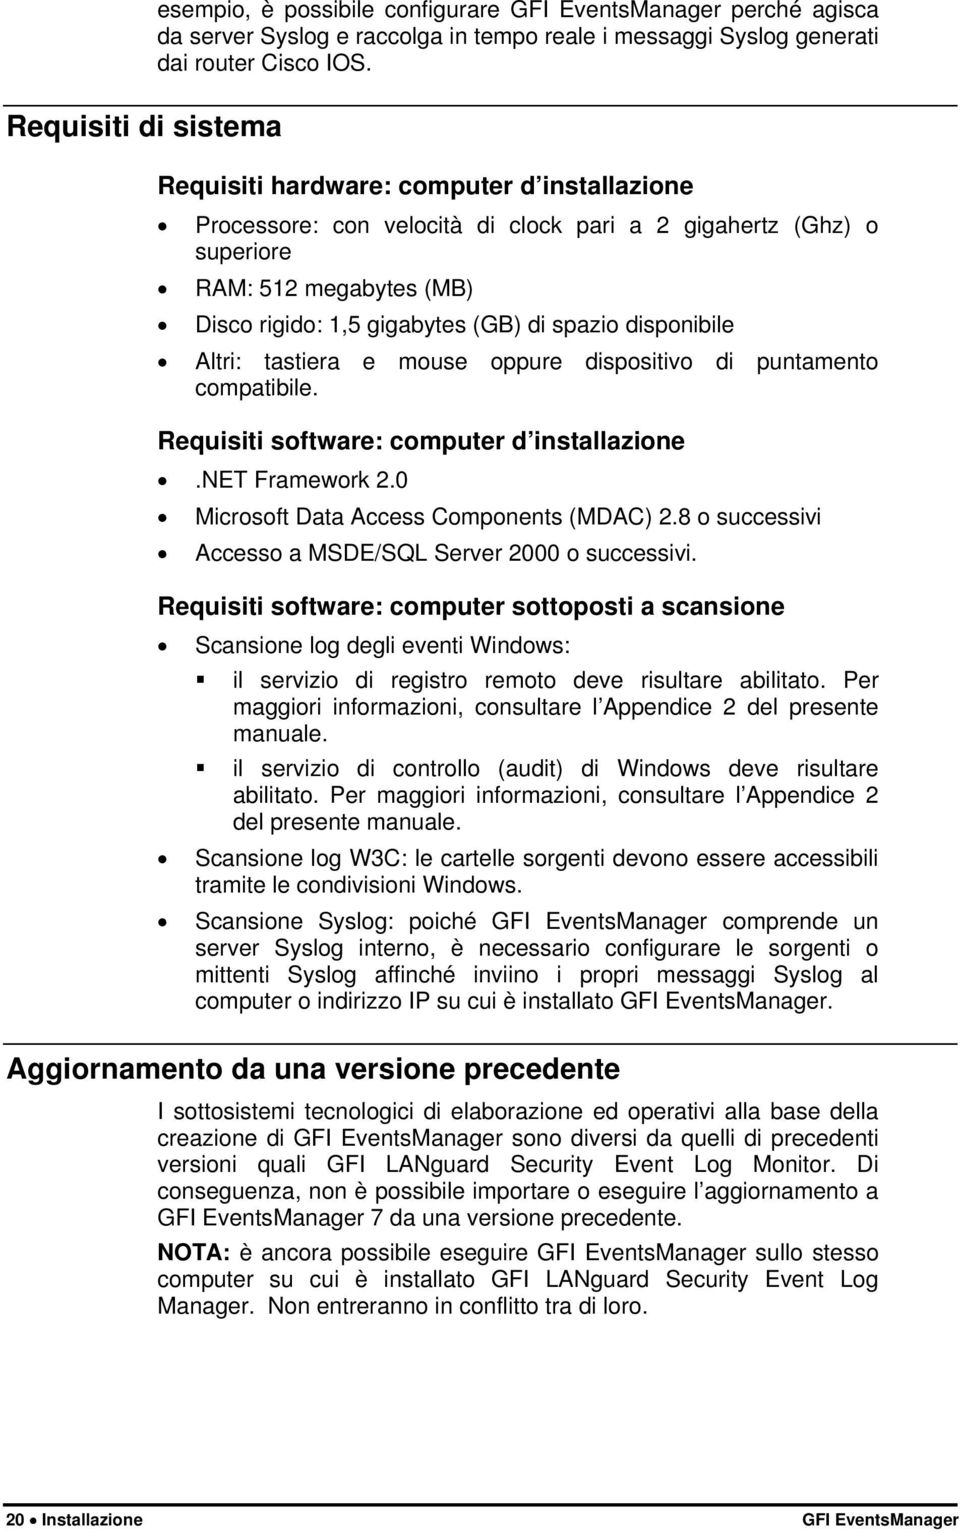 Altri: tastiera e mouse oppure dispositivo di puntamento compatibile. Requisiti software: computer d installazione.net Framework 2.0 Microsoft Data Access Components (MDAC) 2.